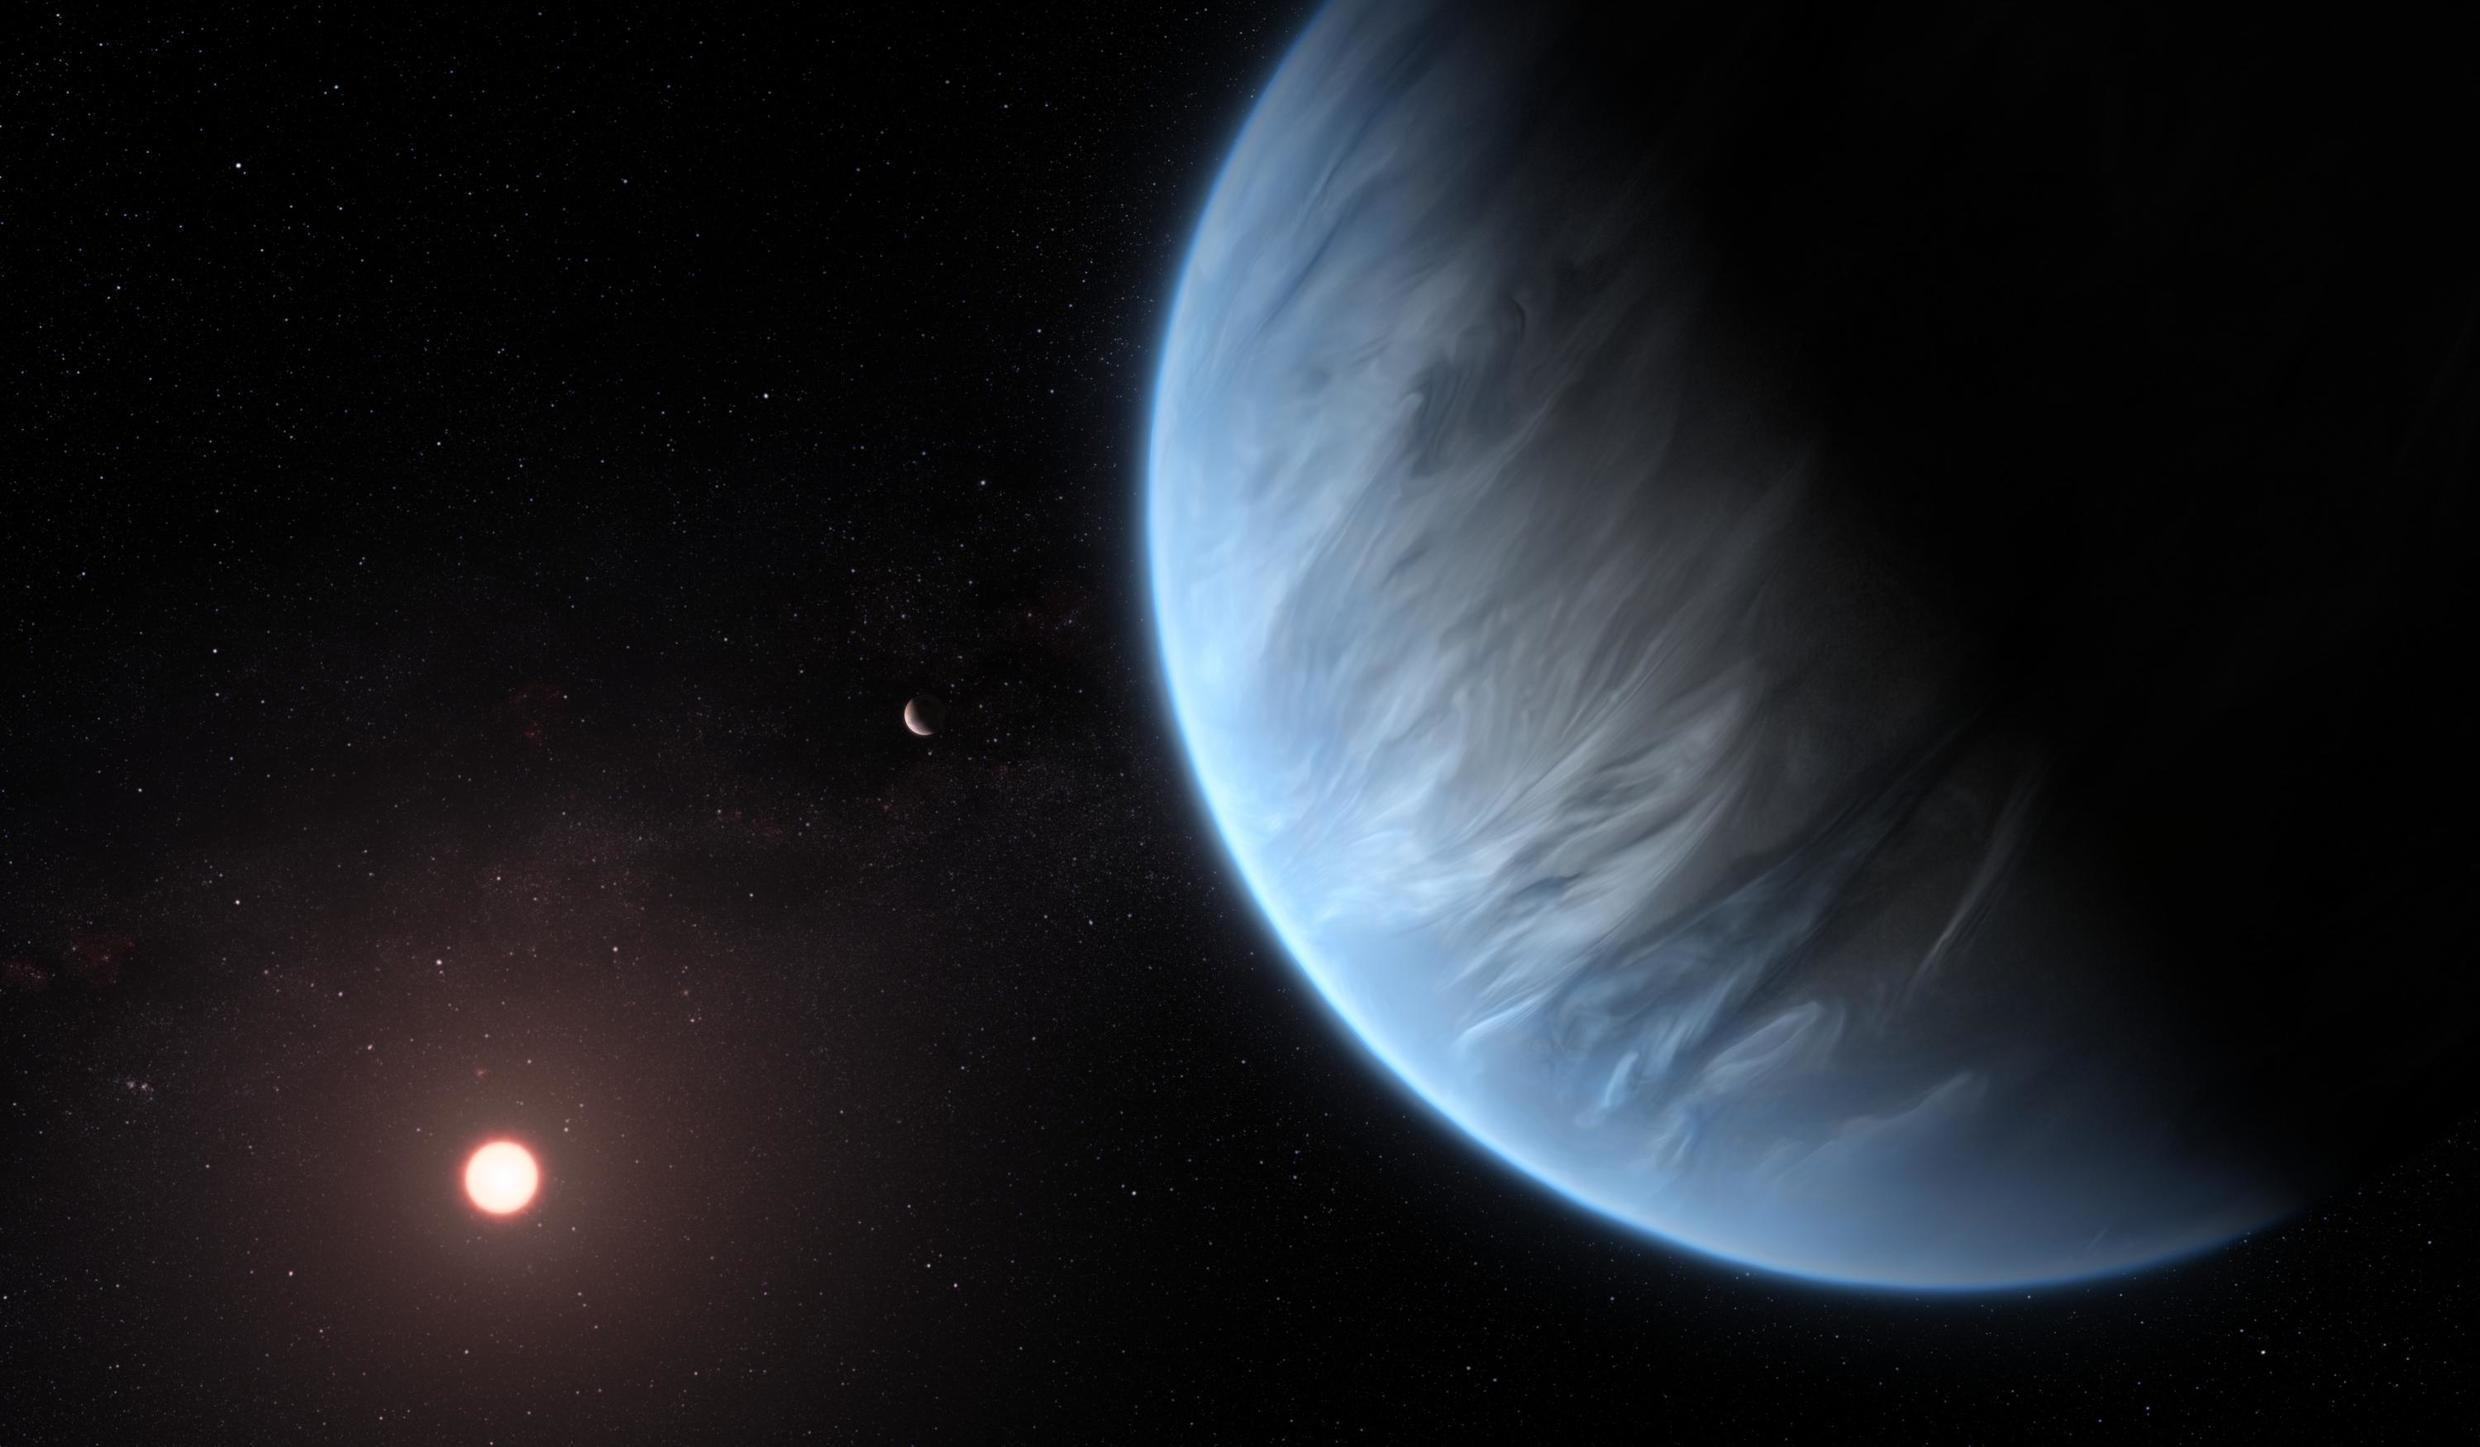 This artist's impression shows the planet K2-18b, its host star and an accompanying planet in this system. K2-18b is now the only super-Earth exoplanet known to host both water and temperatures that could support life.